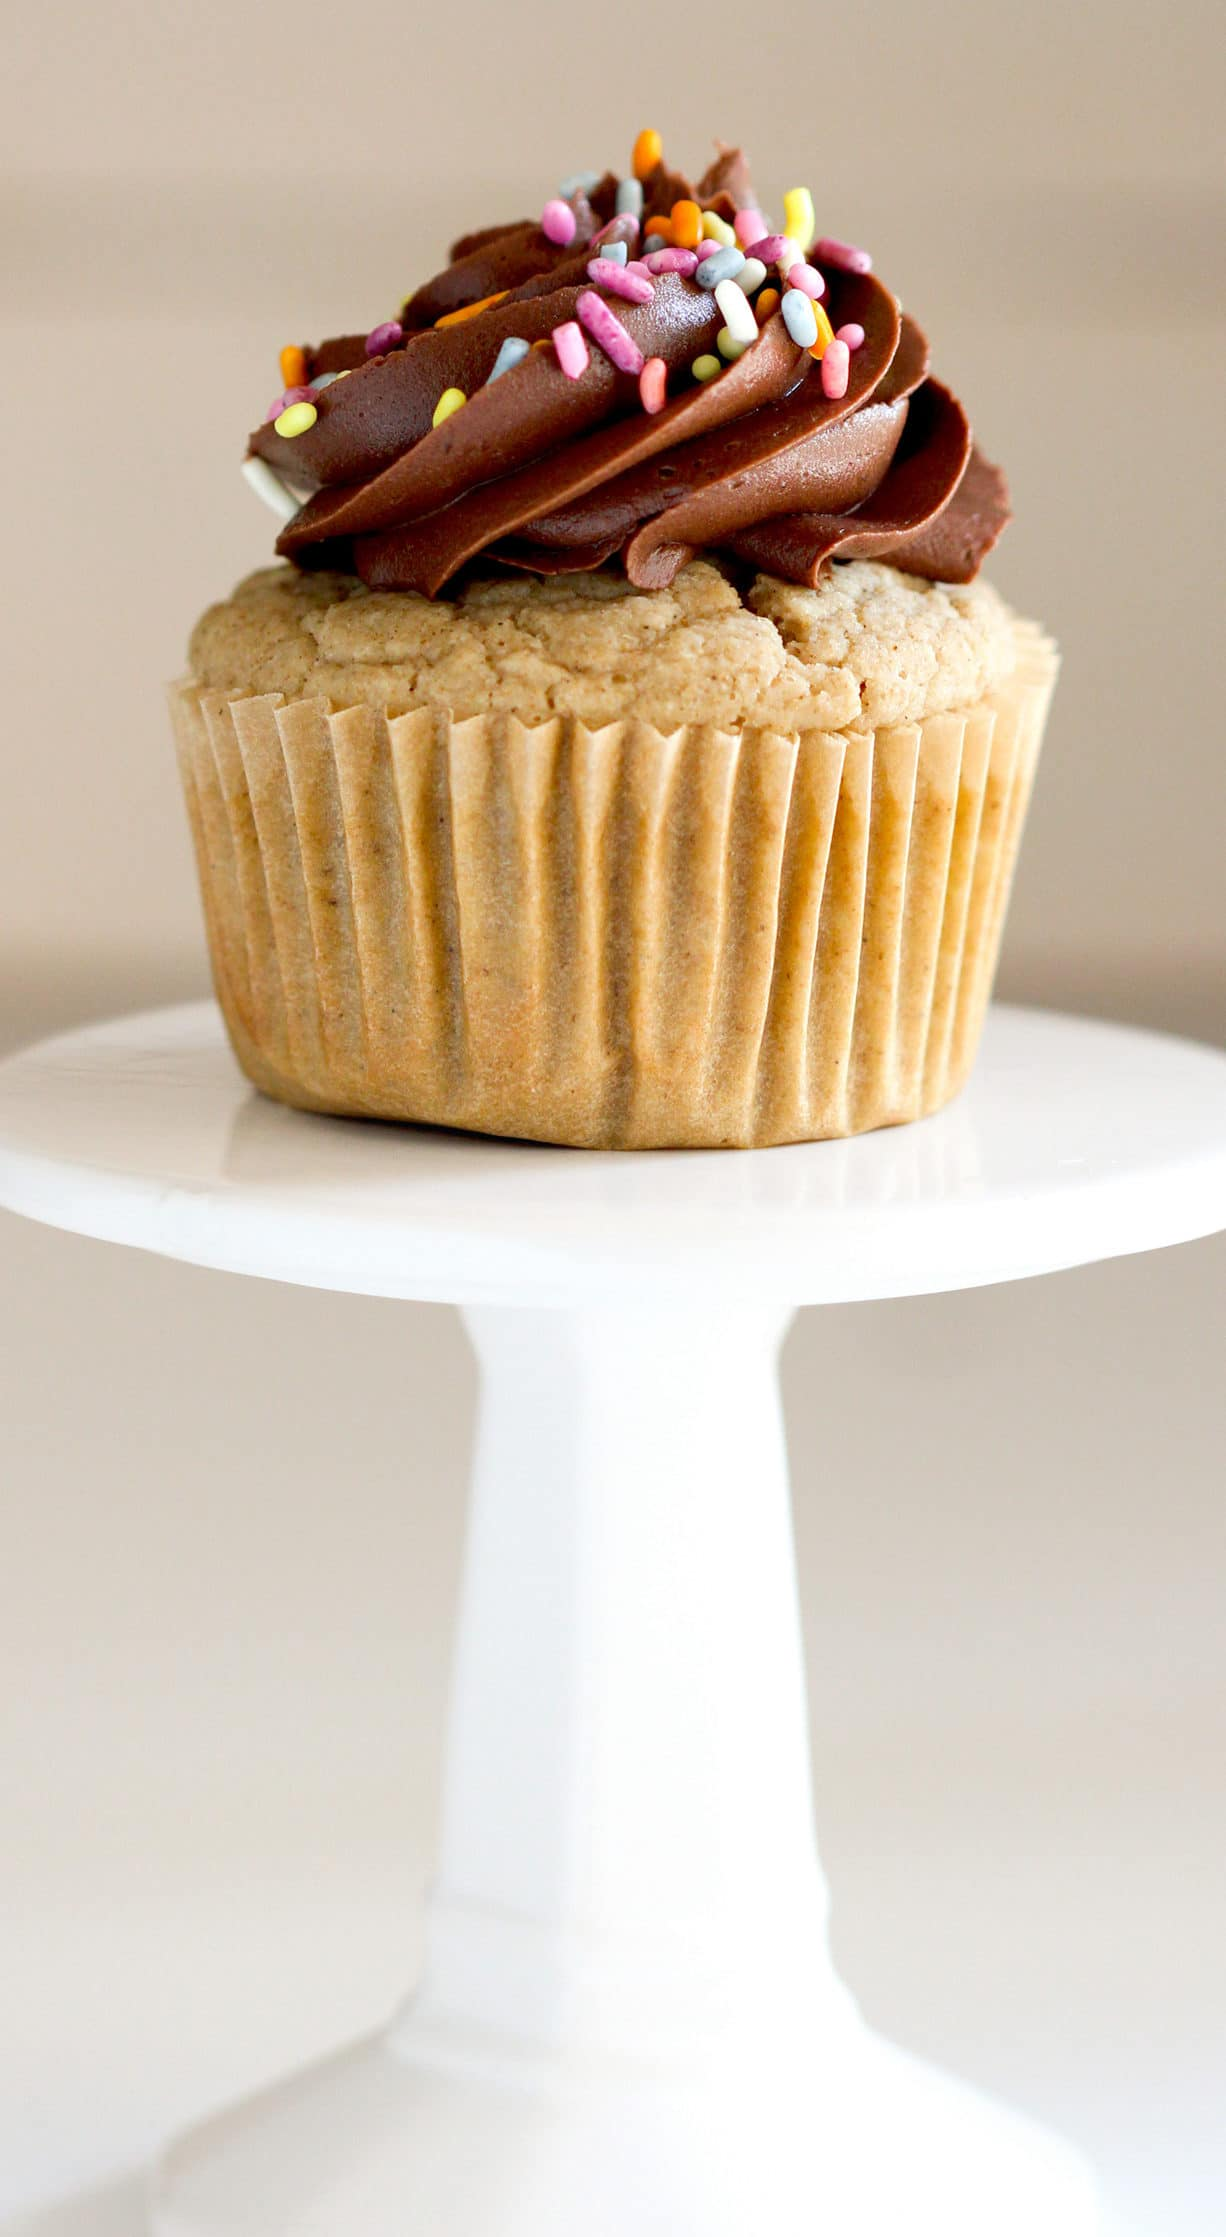 These Healthy Gluten-Free Vanilla Cupcakes will restore your faith in gluten-free baked goods! They're soft, fluffy, moist, and sweet with comforting tones of vanilla bean in every bite. You'd never know these are sugar free, low fat, gluten free, and just 90 calories per cupcake! Healthy Dessert Recipes with sugar free, low calorie, low fat, low carb, high protein, gluten free, dairy free, vegan, and raw options at the Desserts With Benefits Blog (www.DessertsWithBenefits.com)